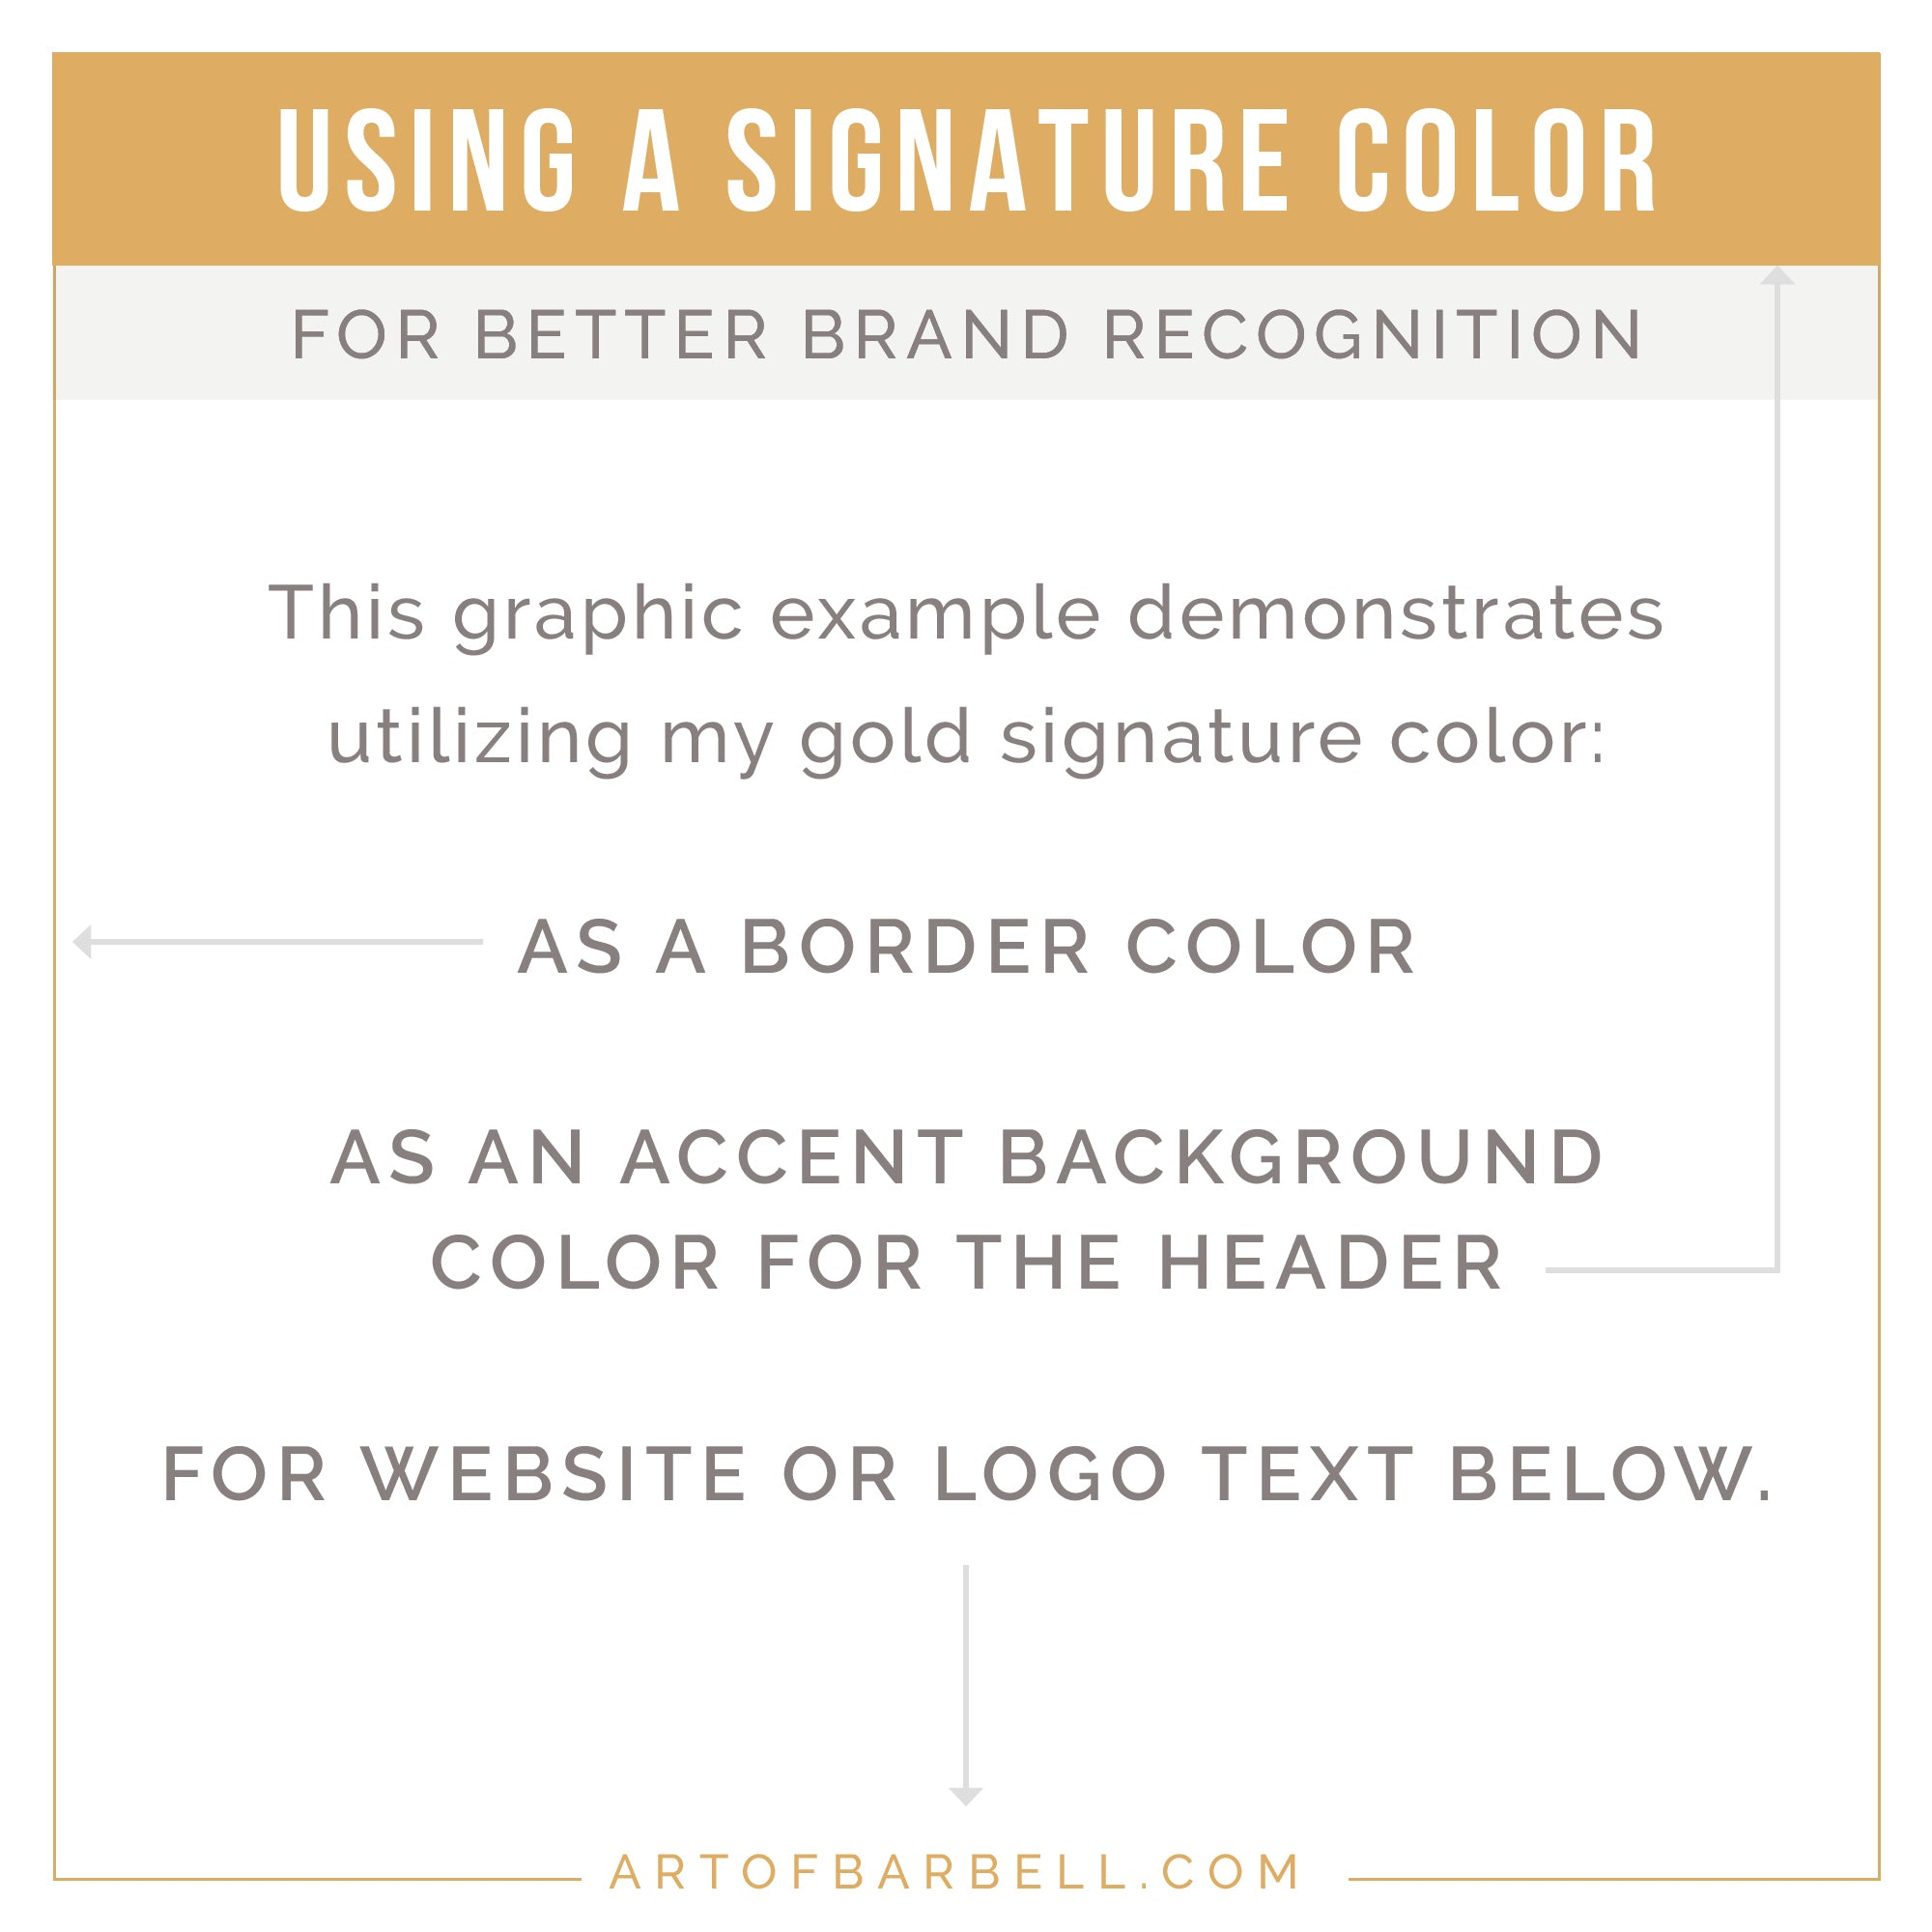 Using a Signature Color for improving your Brand recognition in your graphics - @artofbarbell_